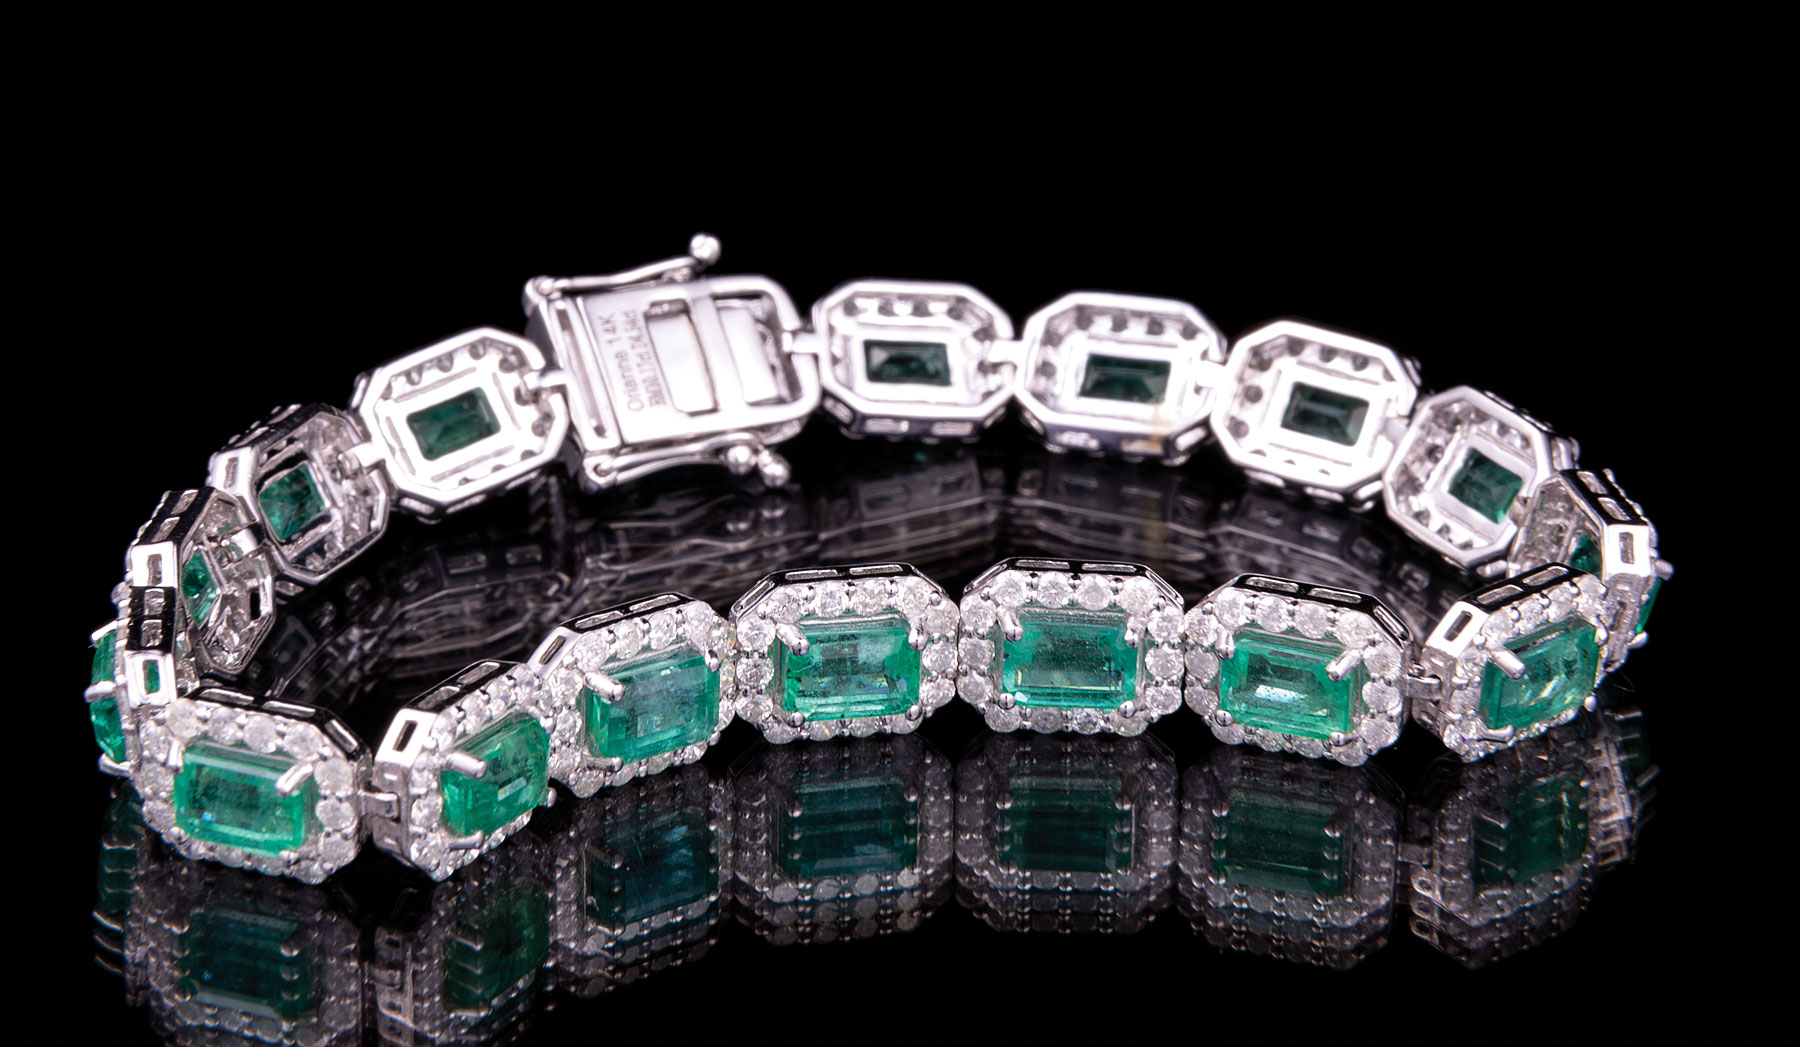 Lot 582 - 14 kt. White Gold, Emerald and Diamond Bracelet , 17 prong set rectangular step cut natural